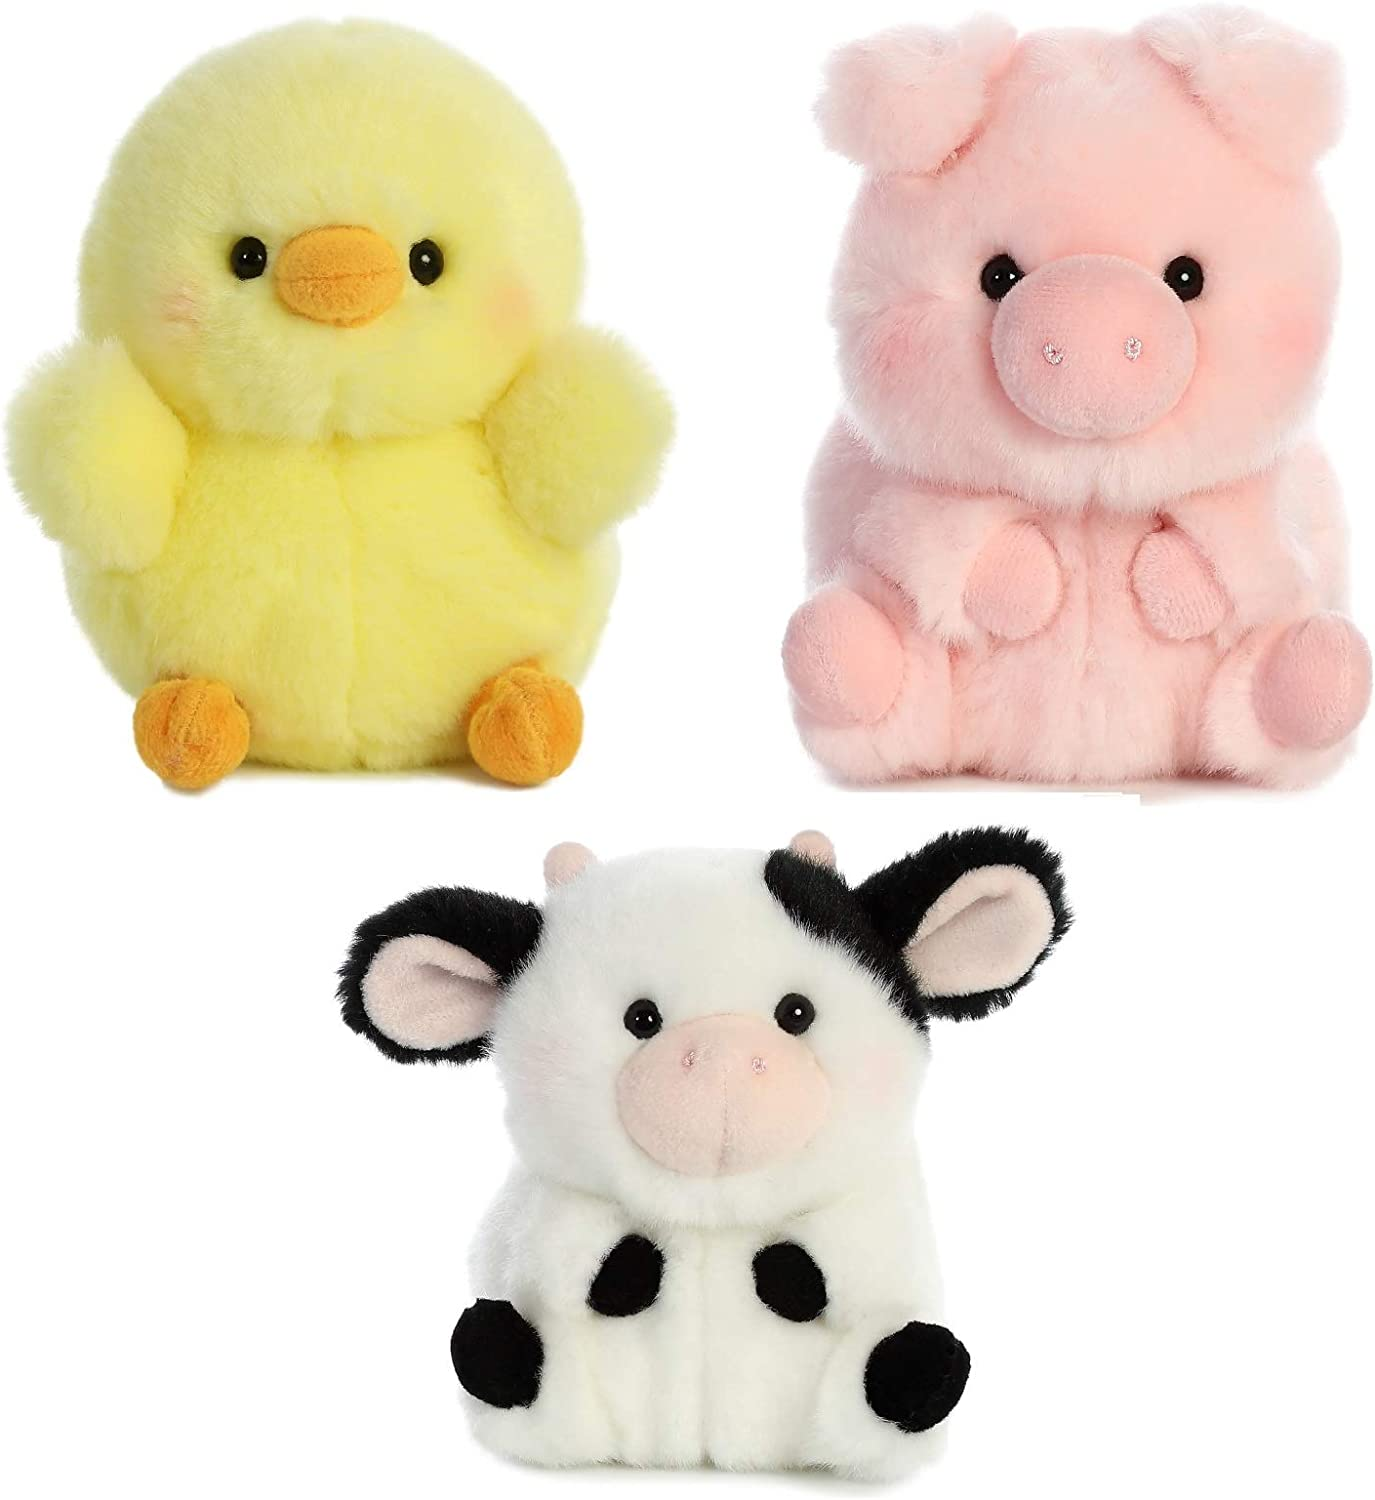 Amazon Com Aurora World Pig Cow And Chicken Stuffed Animal Plush Toy Farm Animals Theme Bundle Of 3 Rolly Pet Items 5 Inches Each Toys Games